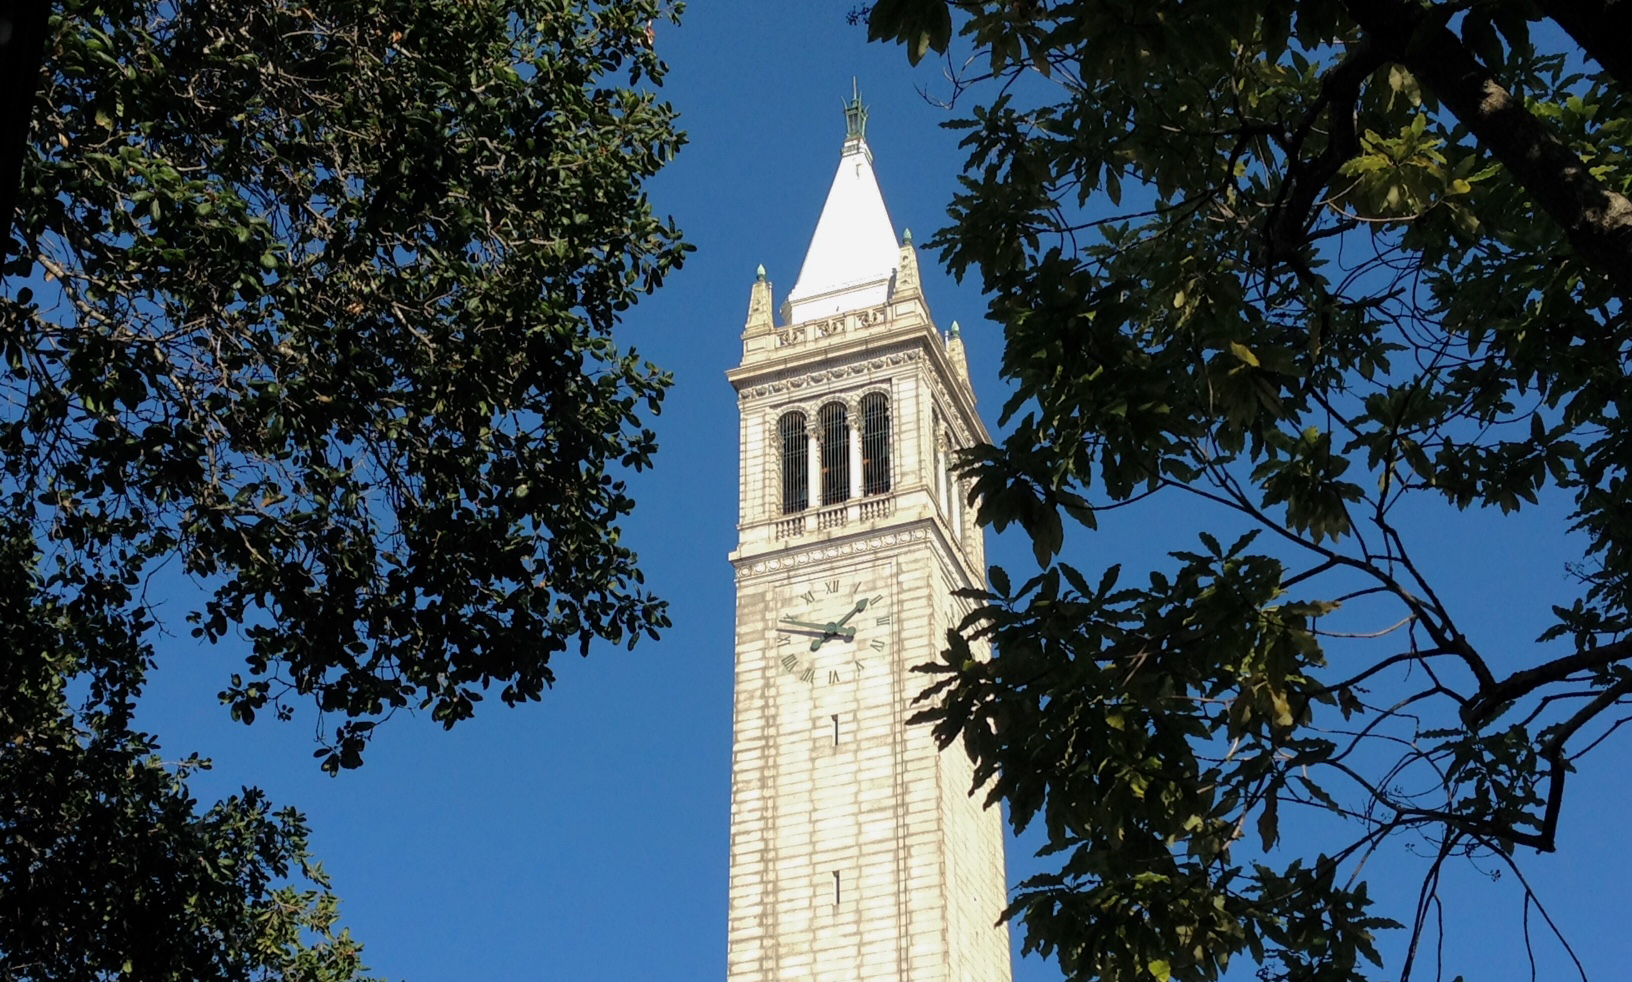 UC Berkeley campus, photo by V. Chikovani